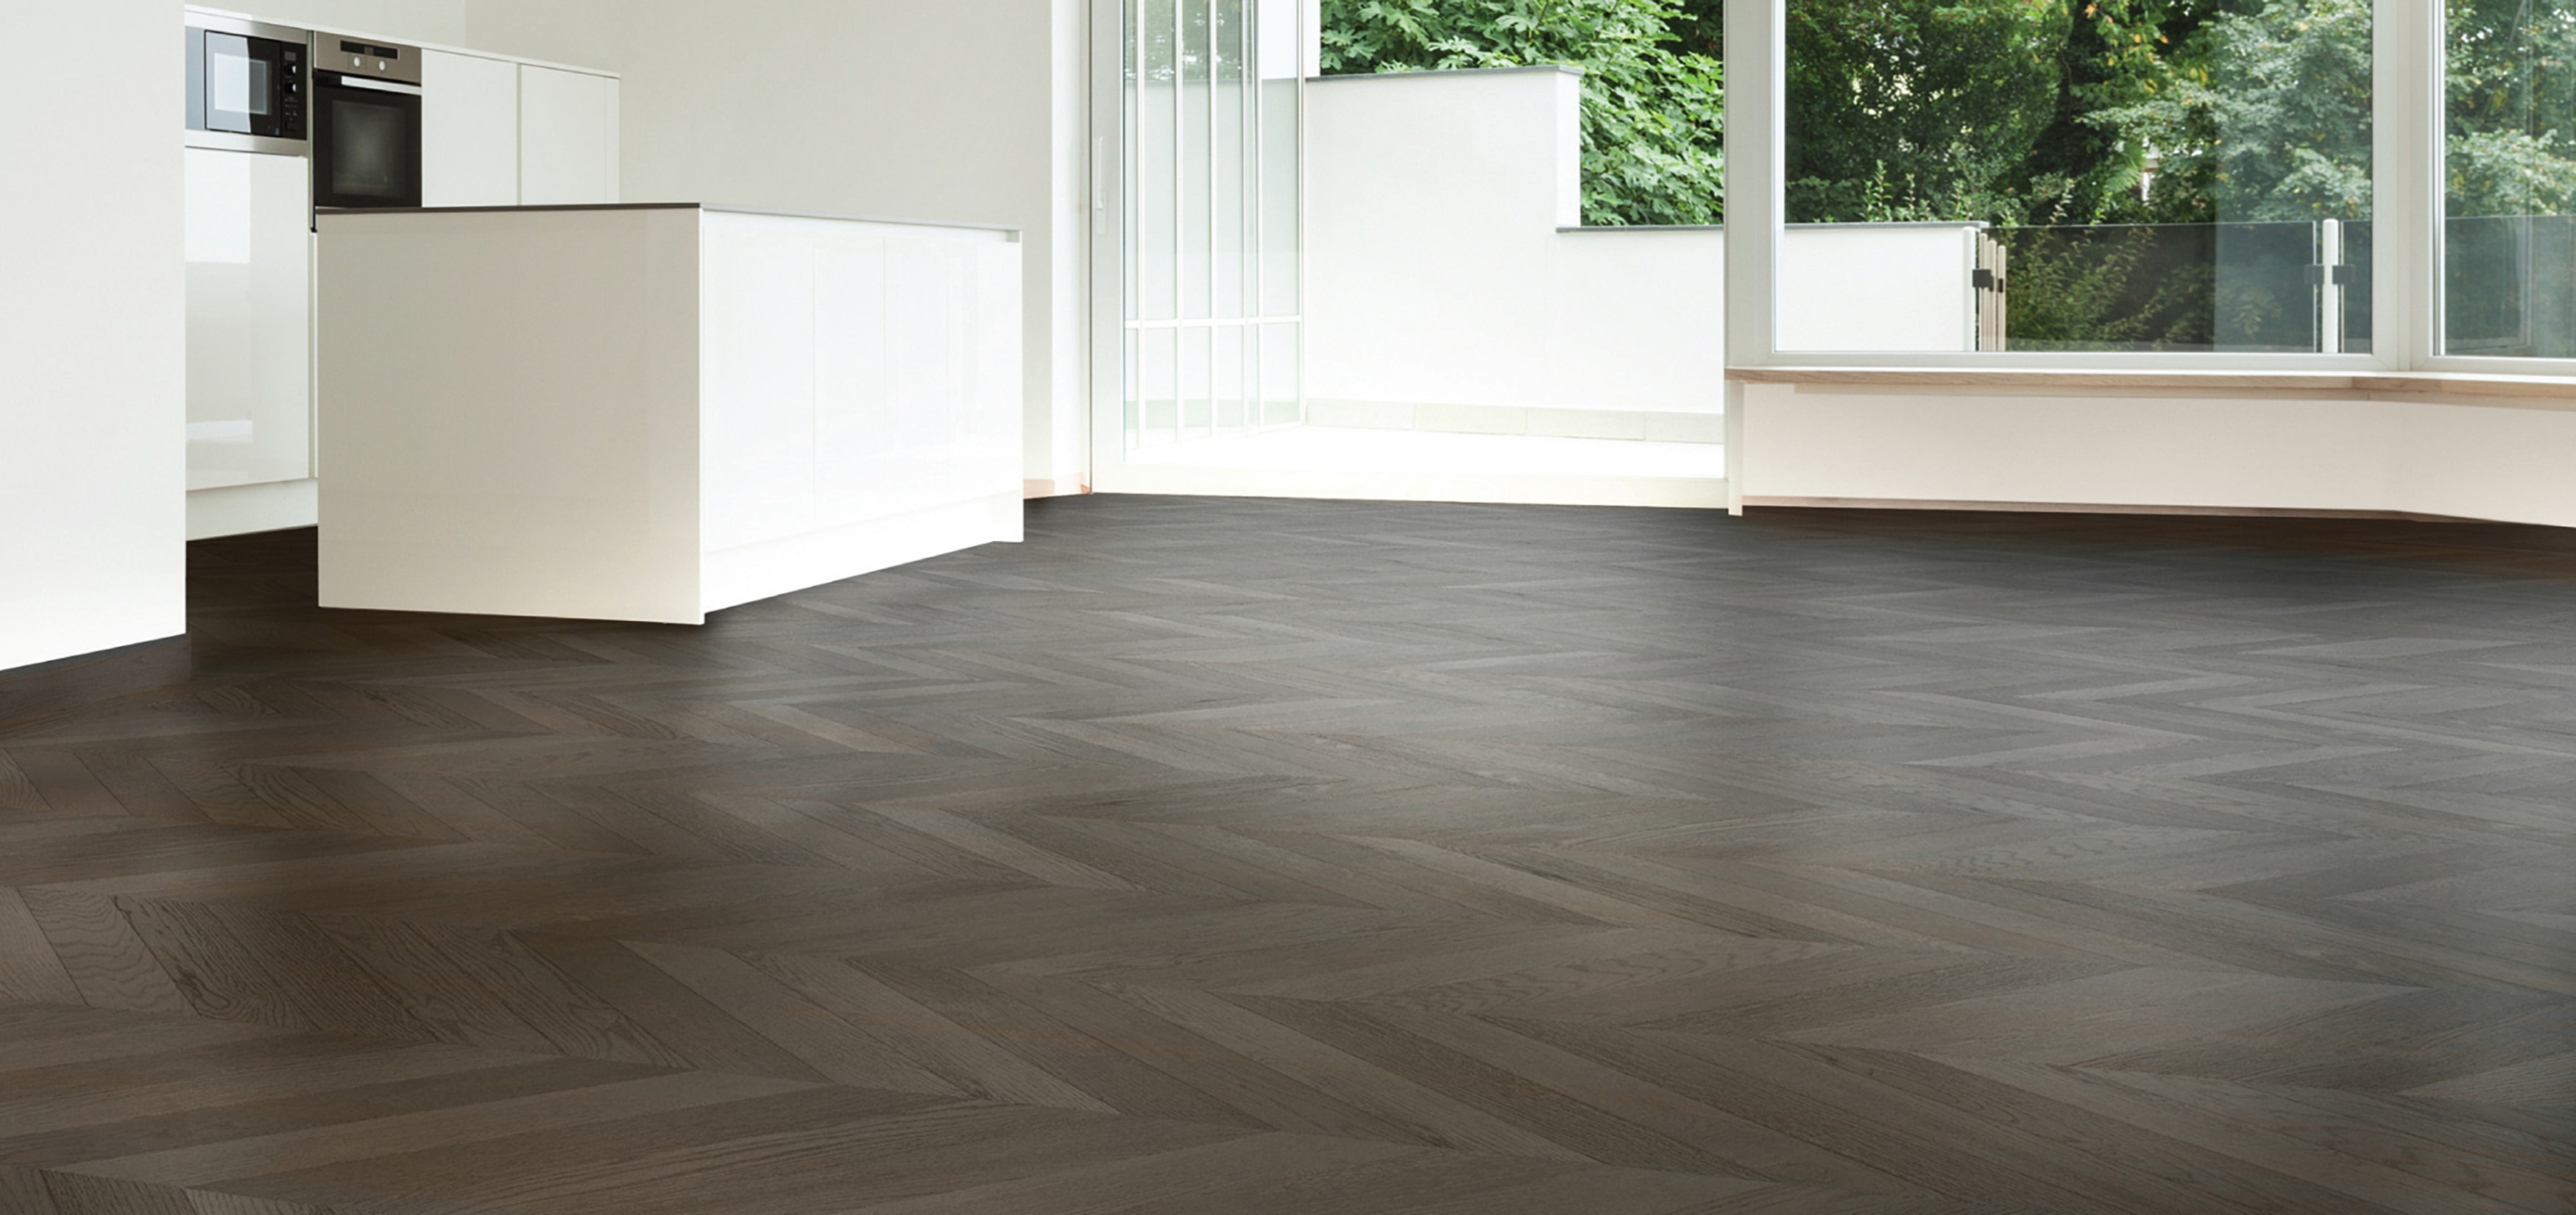 Wood Flooring London | Chevron Room example